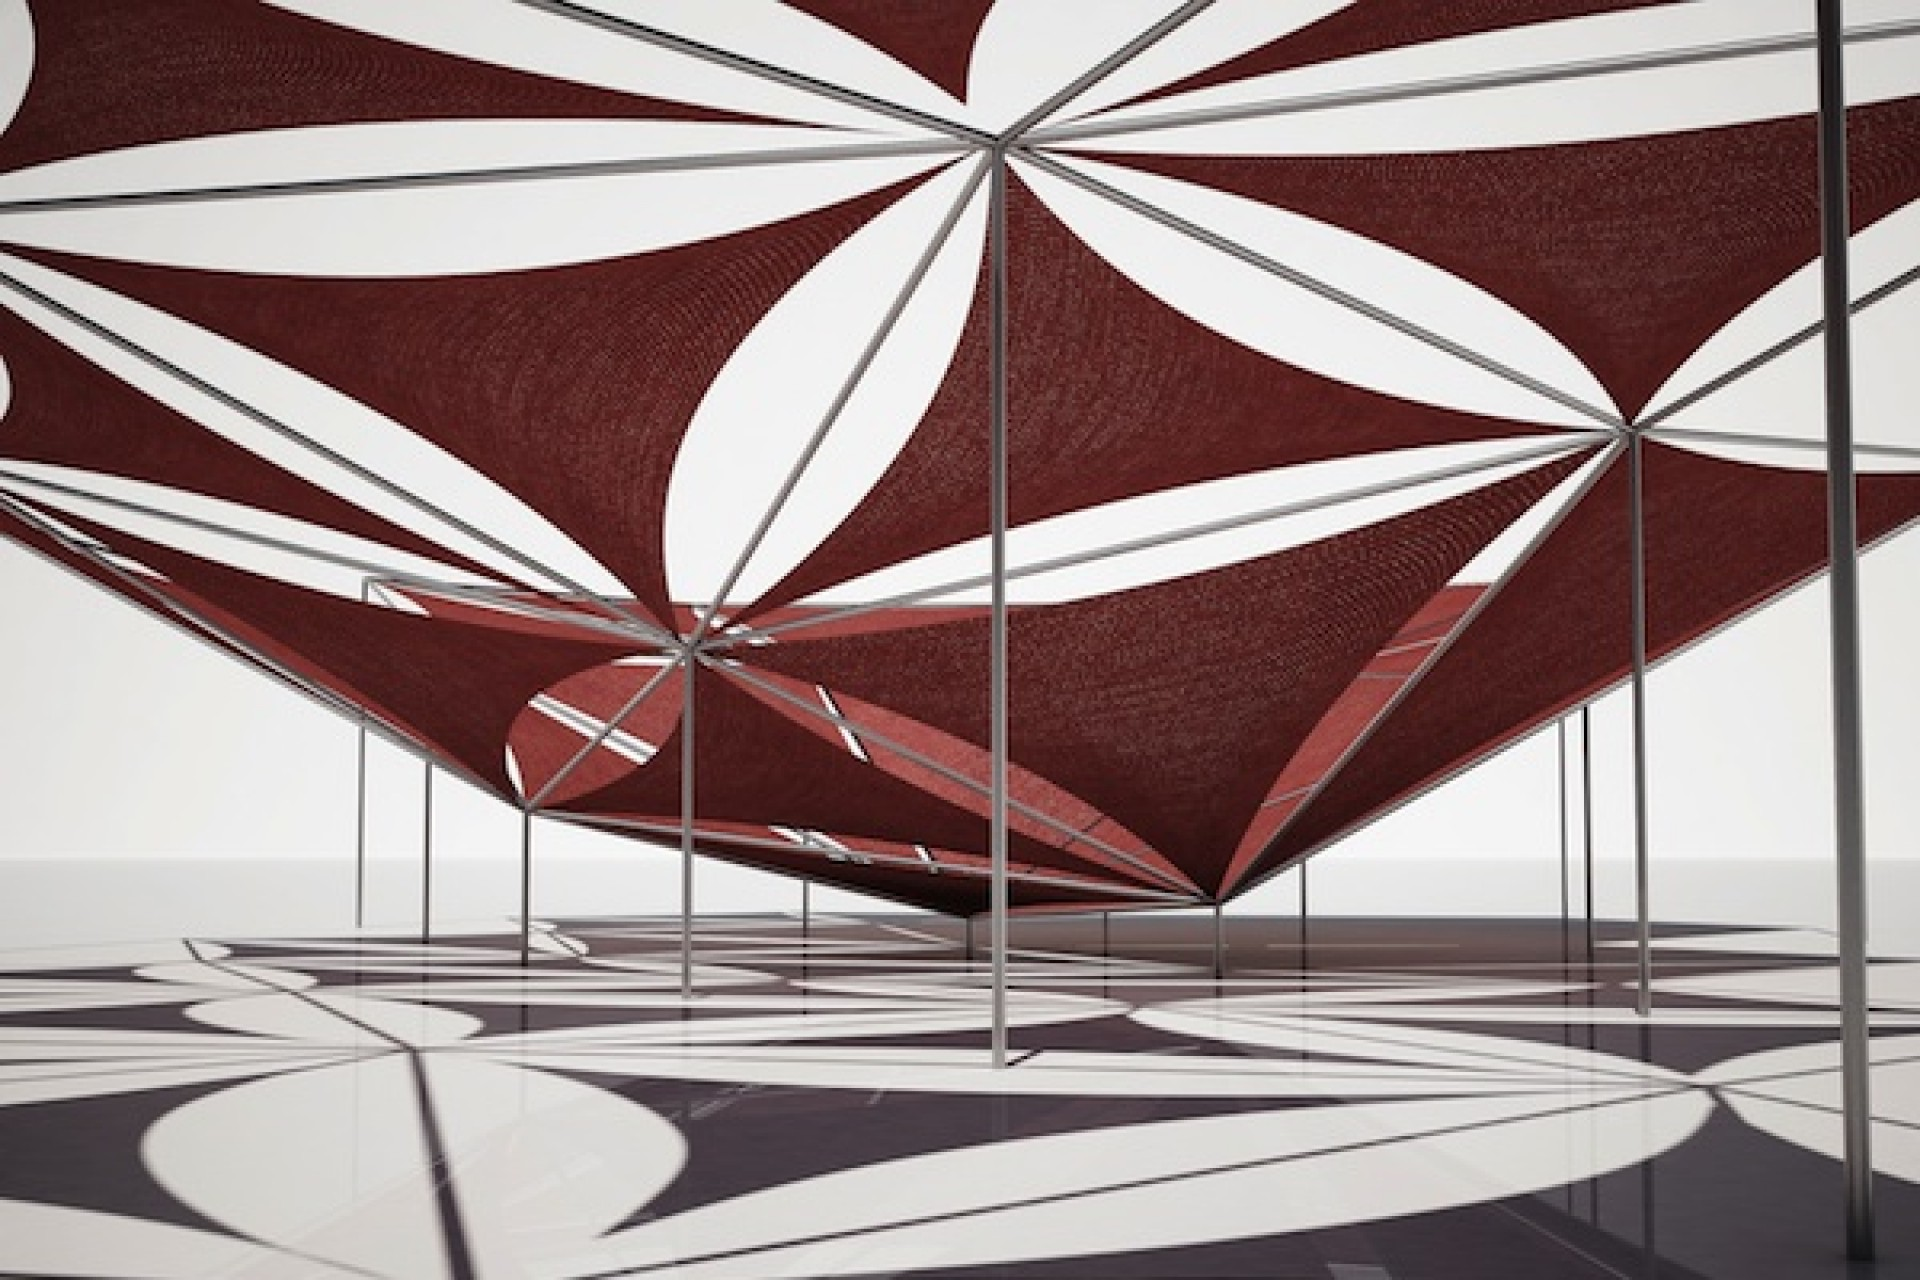 Kinetic Pavilion by Elise Elsacker and Yannick Bontinckx